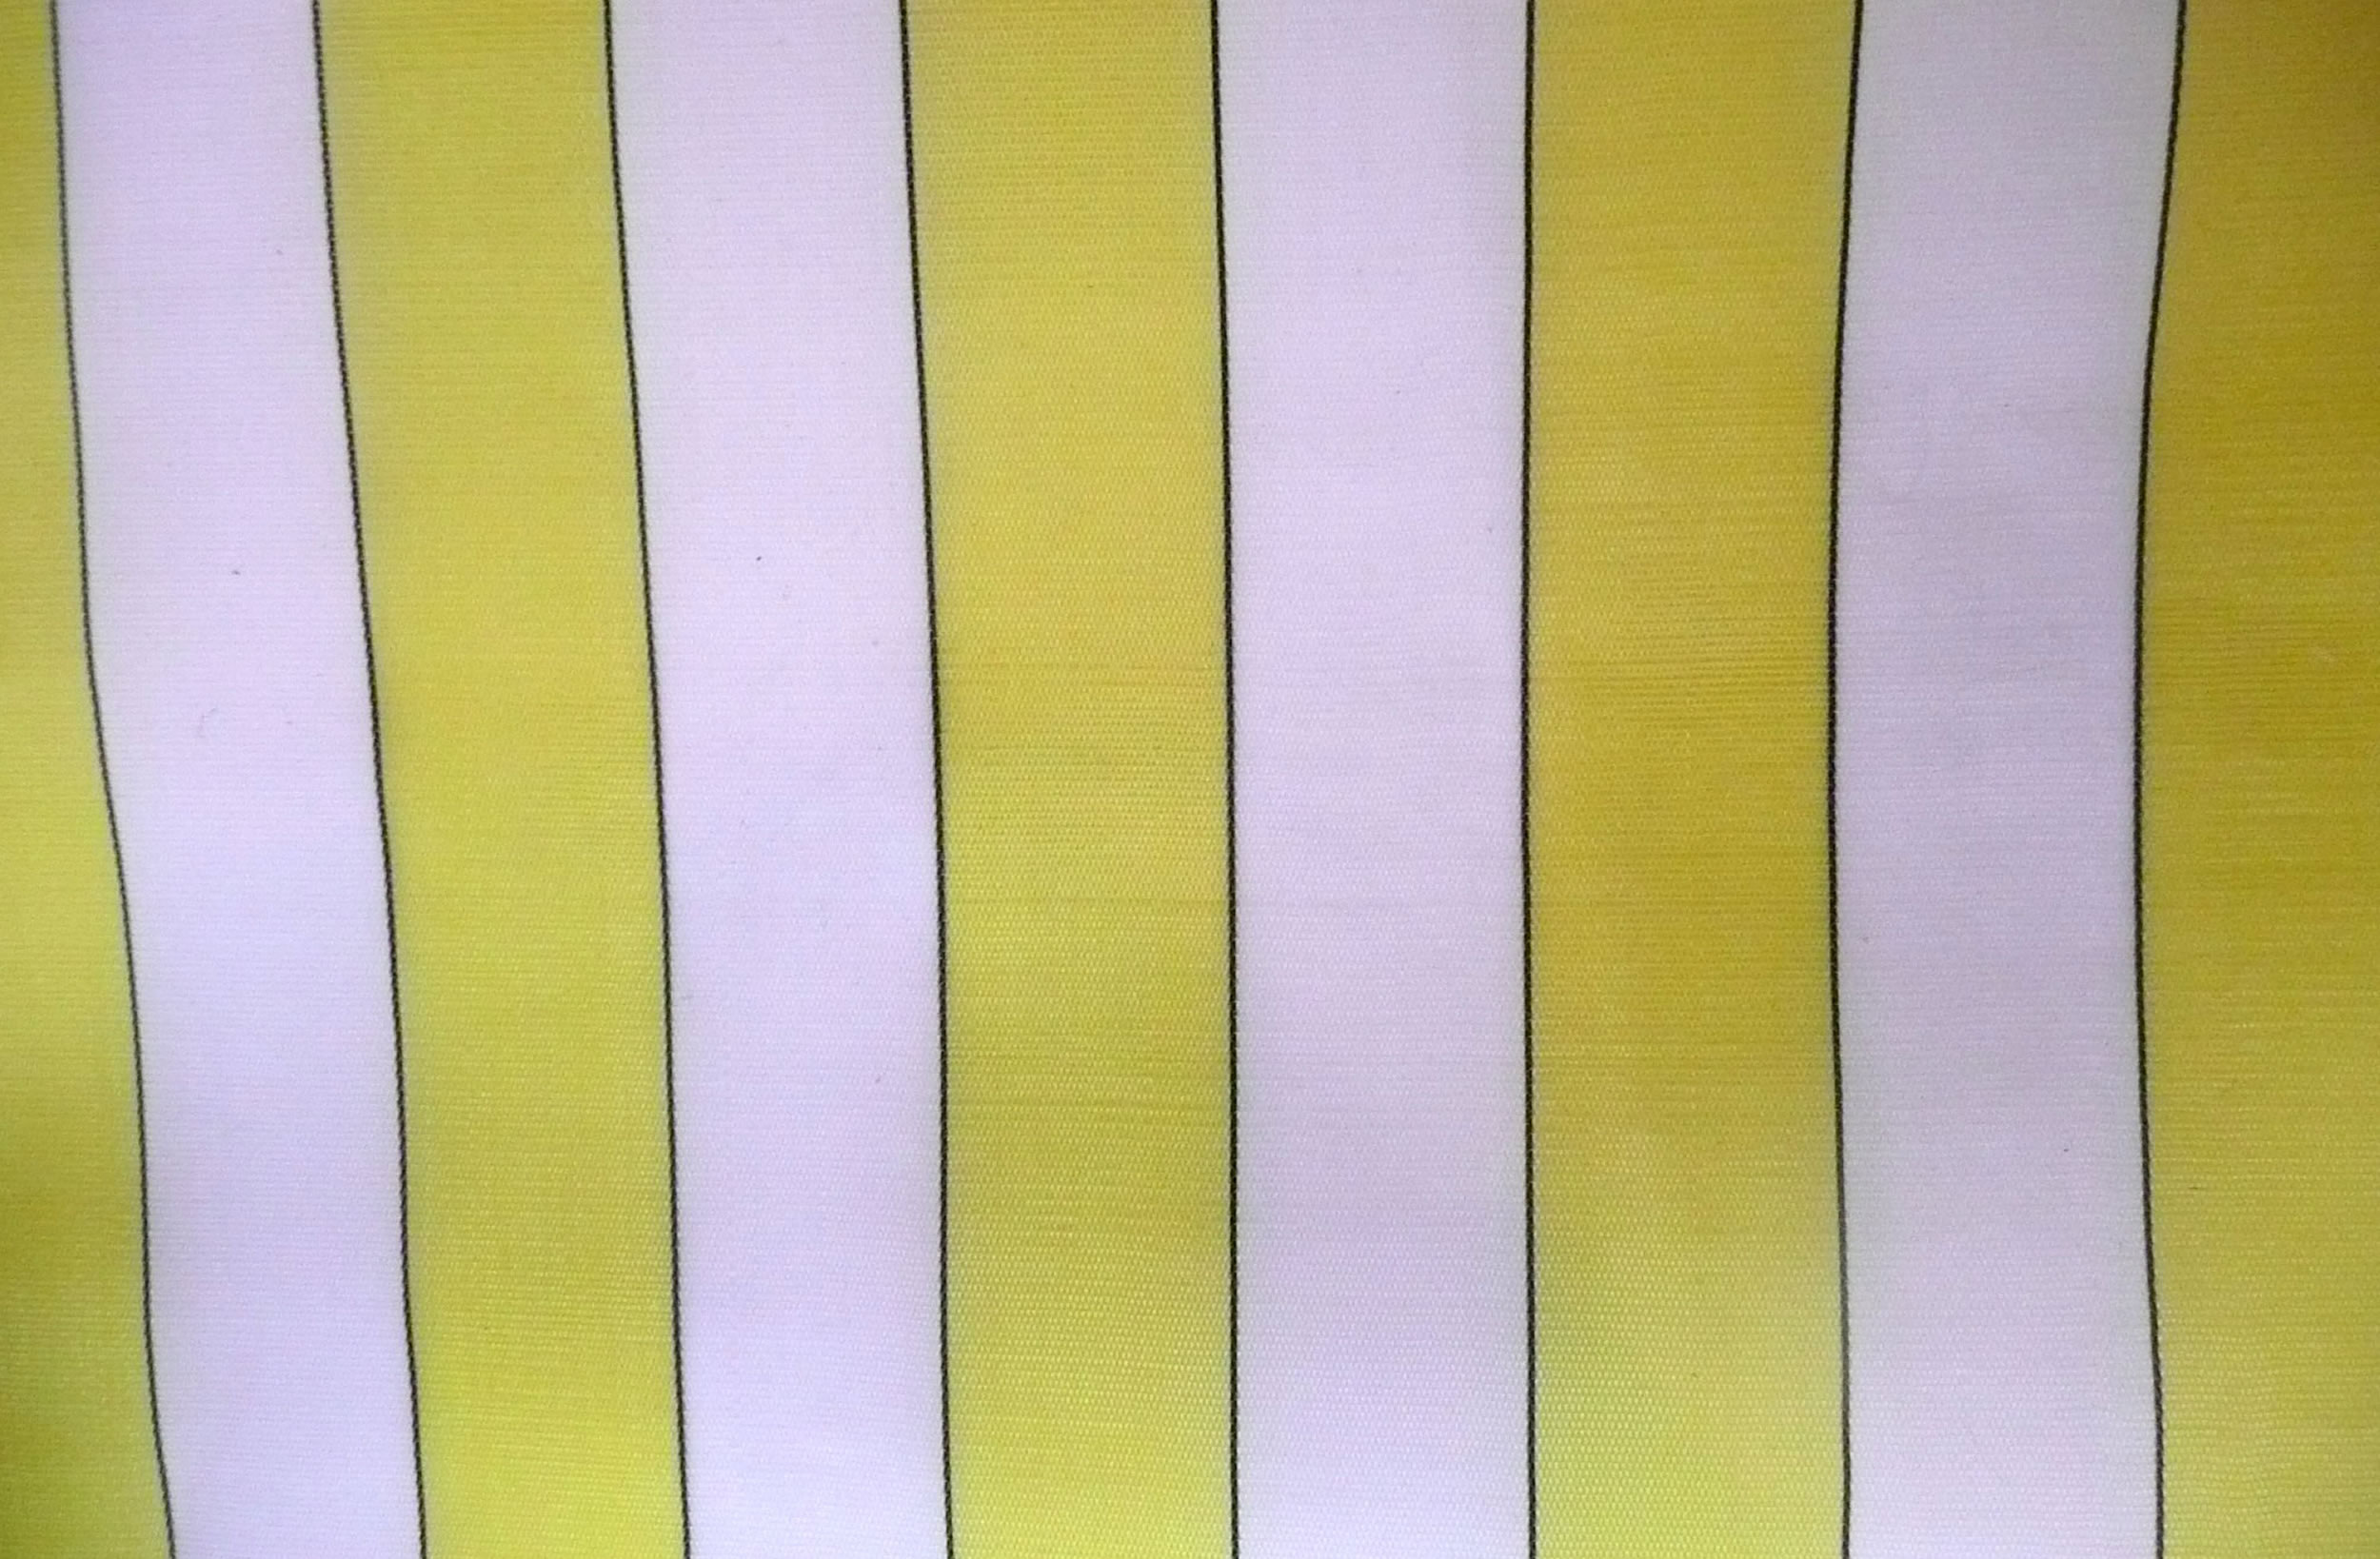 Yellow and White Waterproof Deckchair Canvas